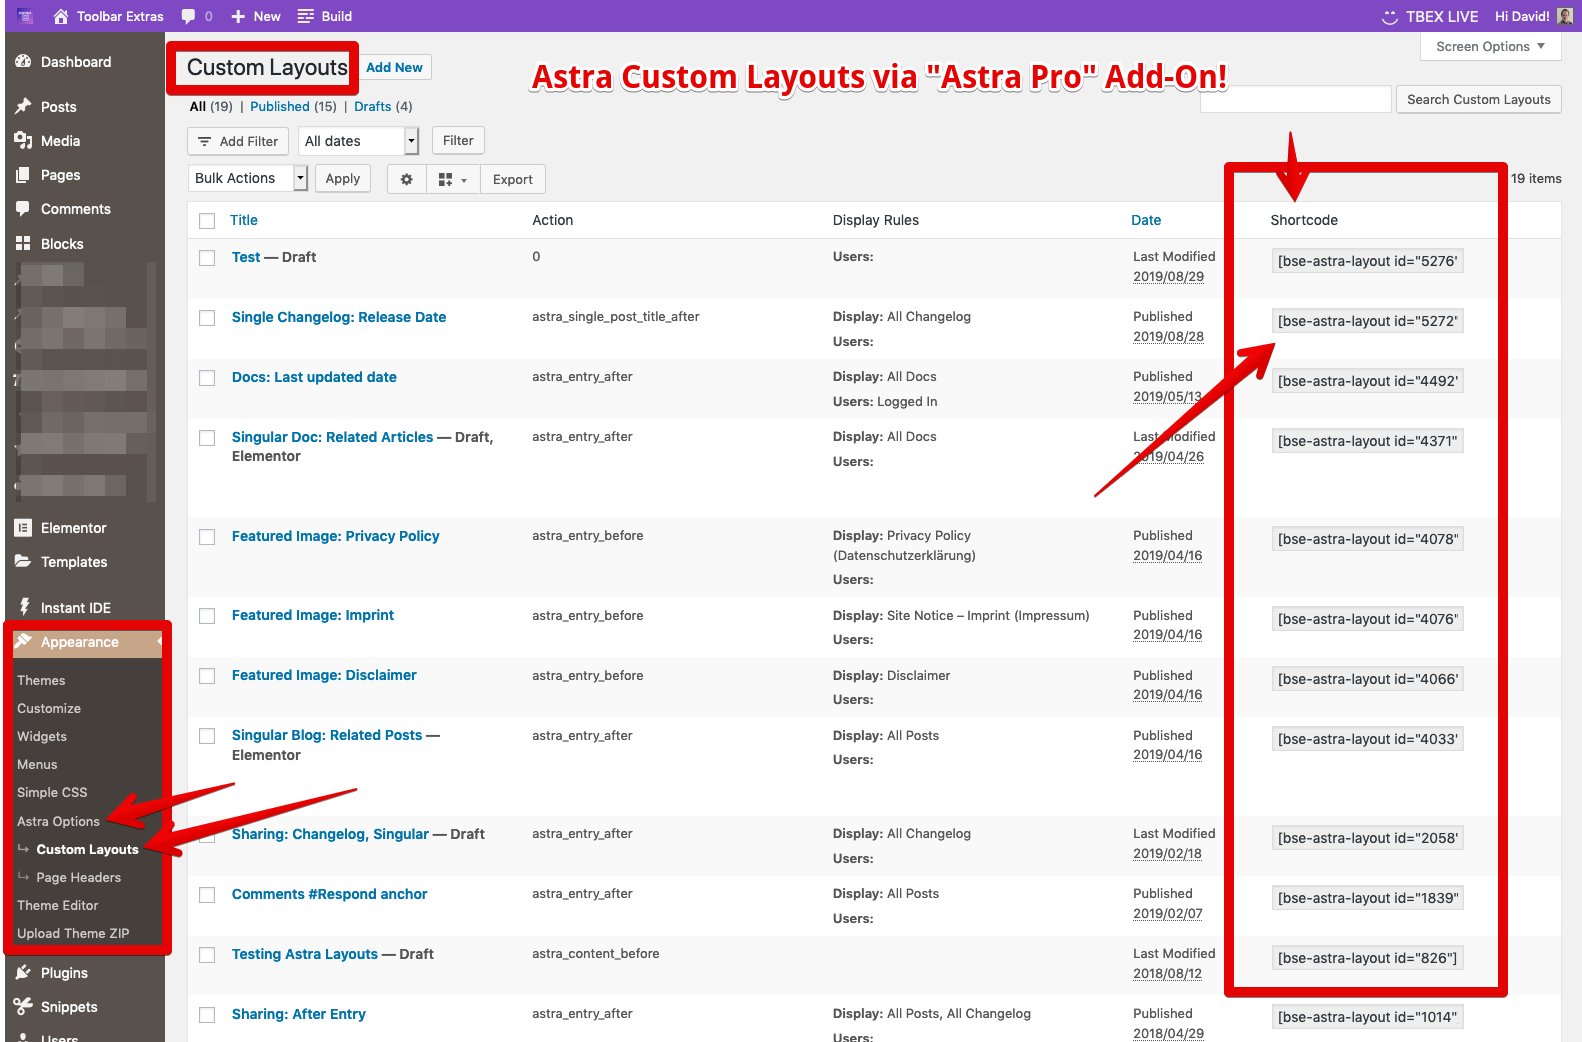 <p>For Astra Pro: Shortcode for each Astra Custom Layout - great for reusage</p>